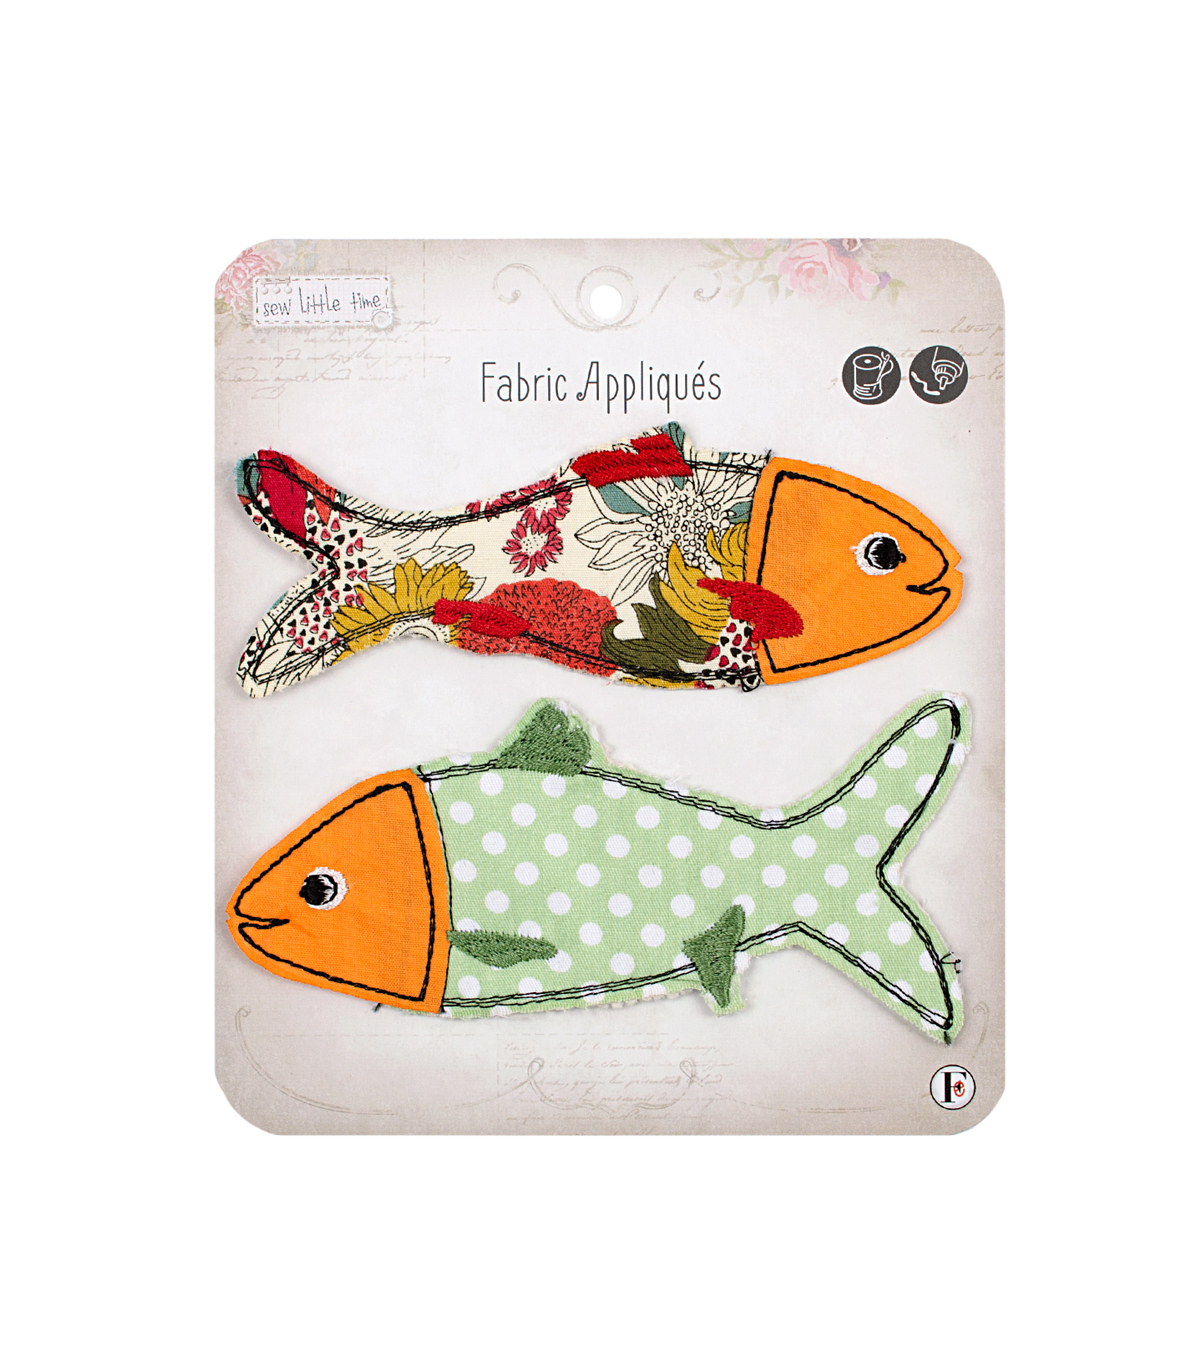 Fabric Editions Sew Little Time 2 Pack Fabric Appliques-Fish